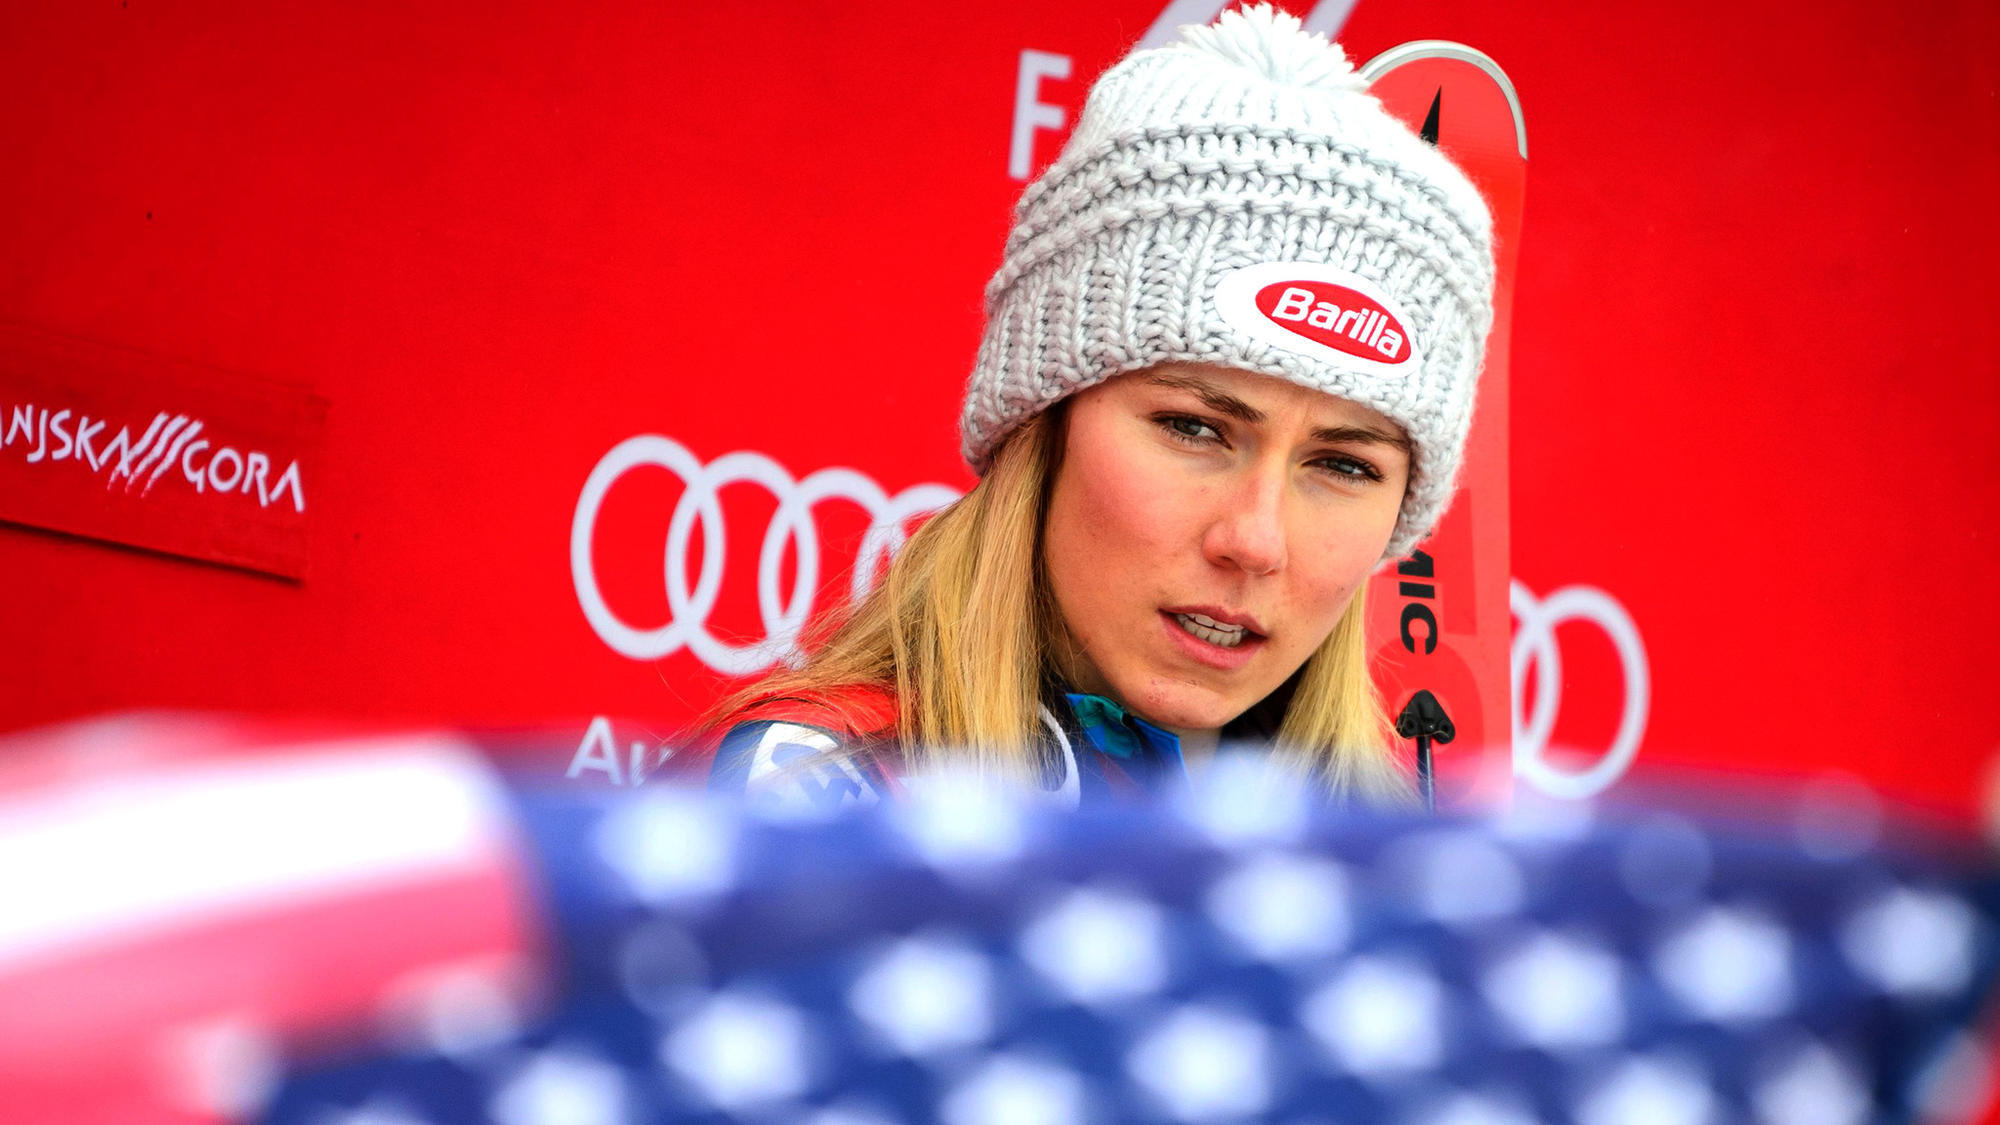 Mikaela Shiffrin dominates again in slalom to earn 40th World Cup victory